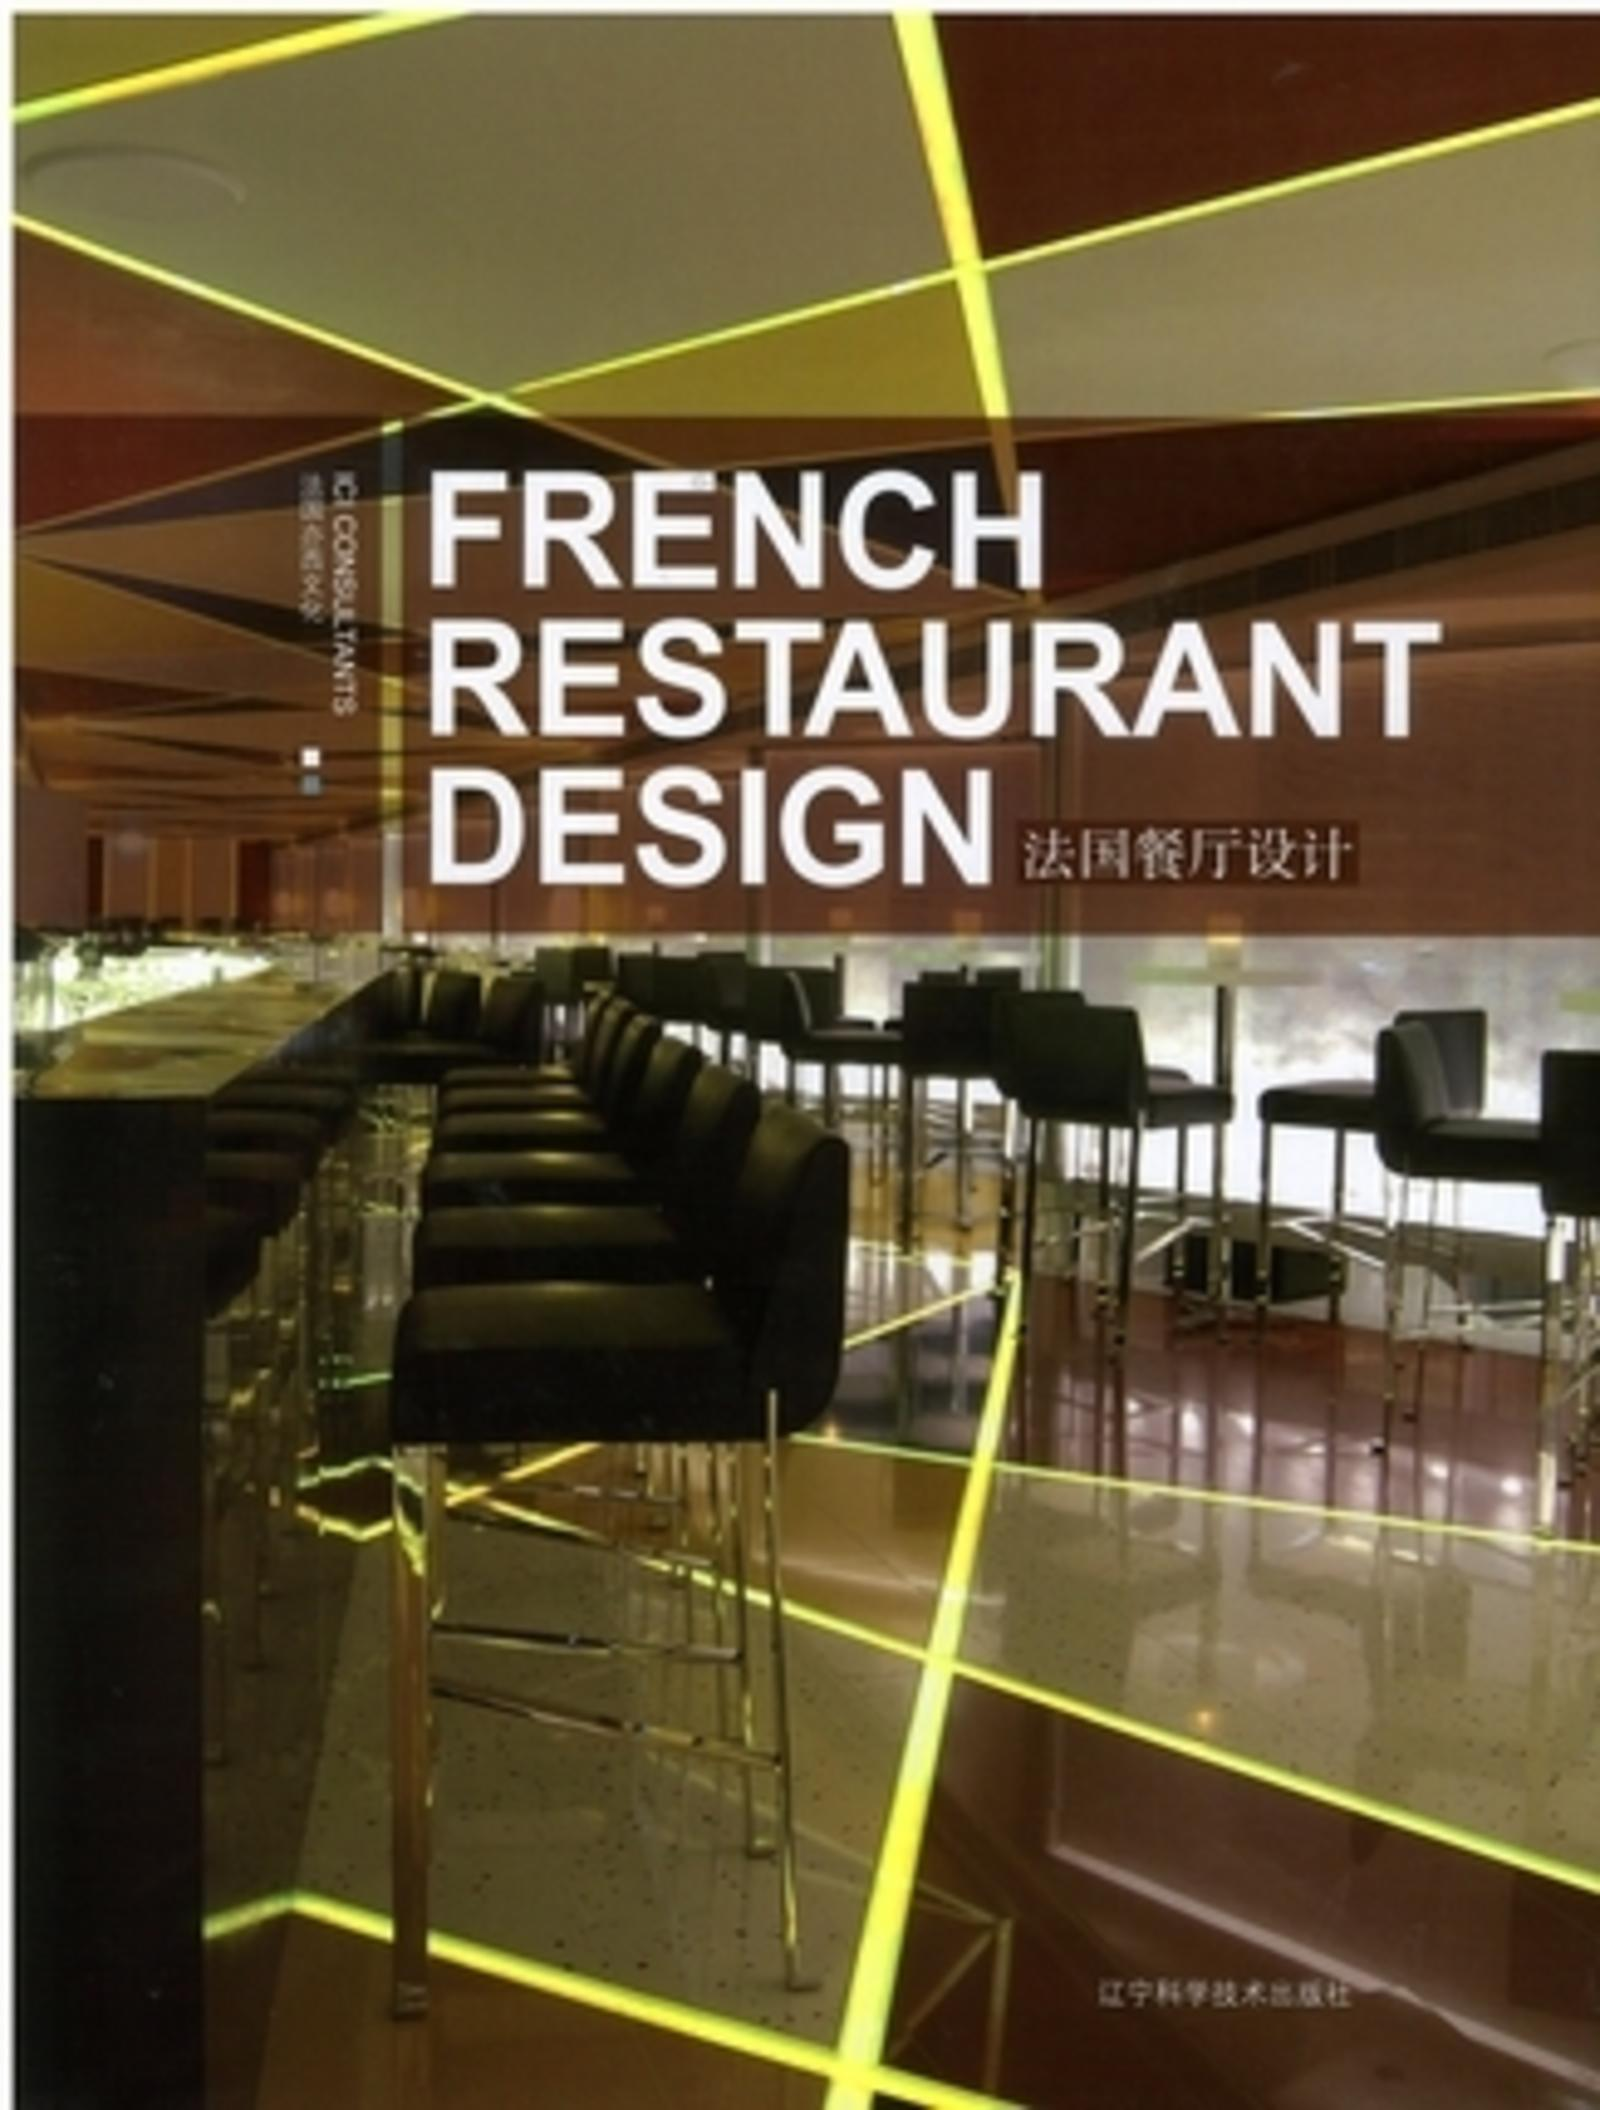 ARCHITECTURE INTERIEUR FRANCAIS-RESTAURANTS - FRENCH RESTAURANT DESIGN